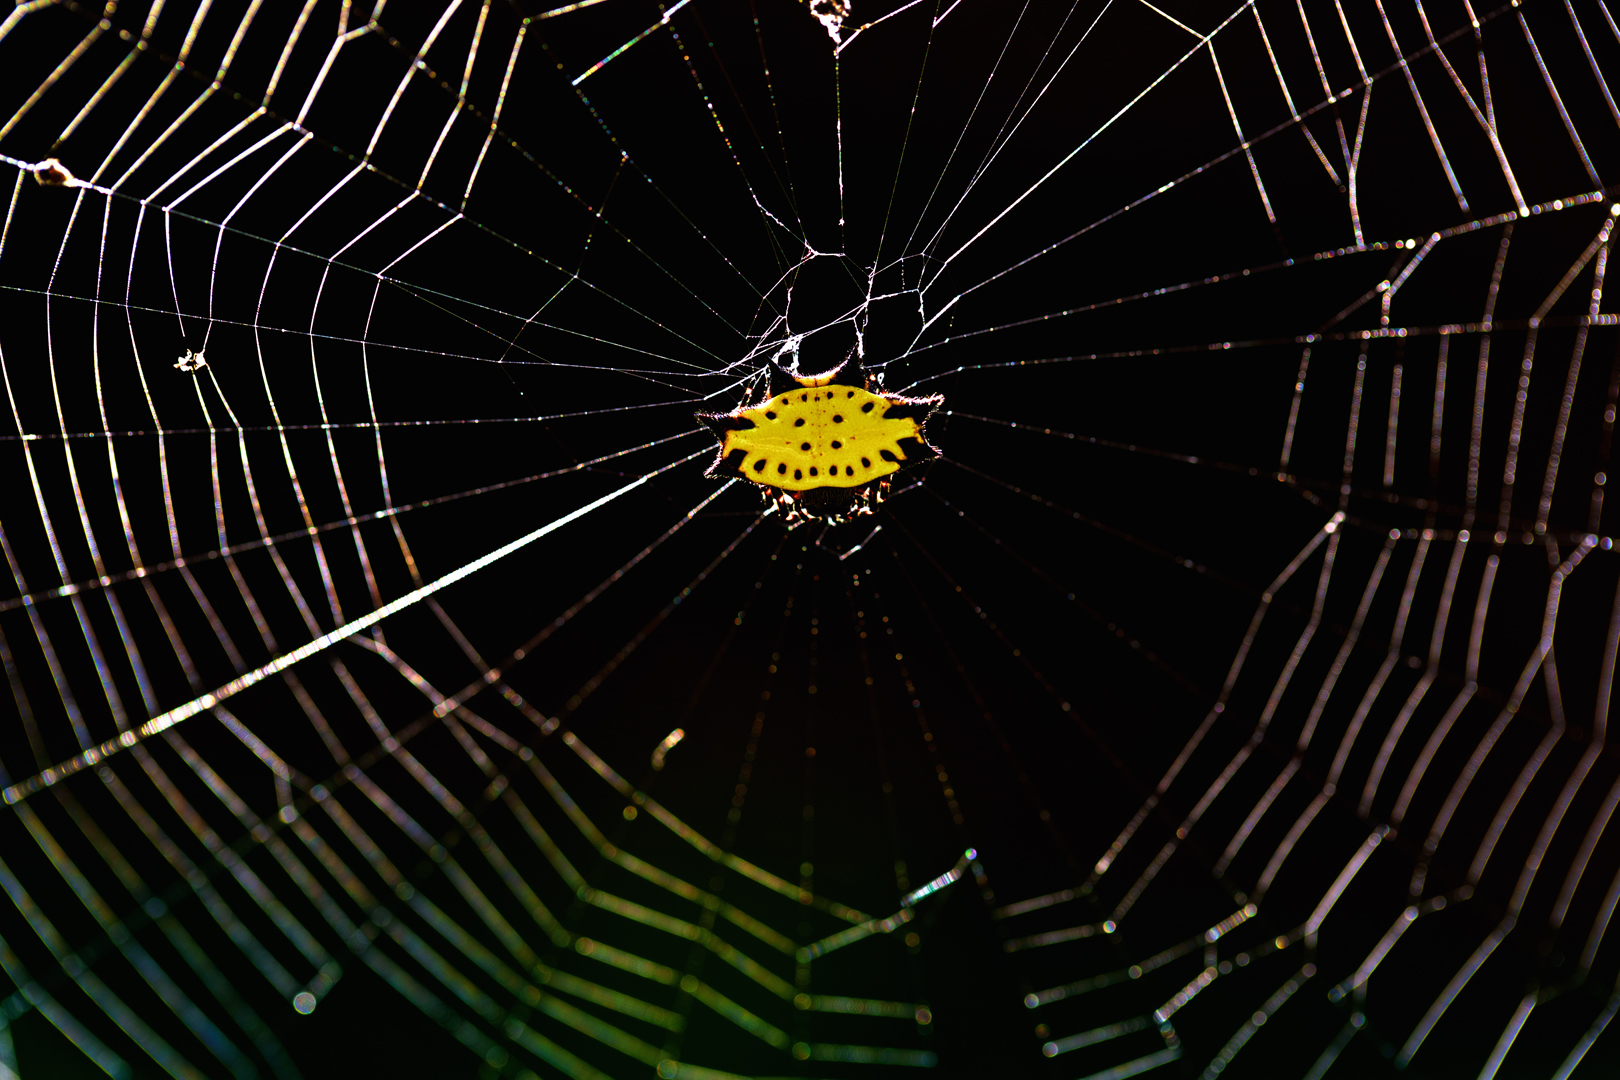 Yellow Spiny Orbweather Spider – Gasteracantha cancriformis